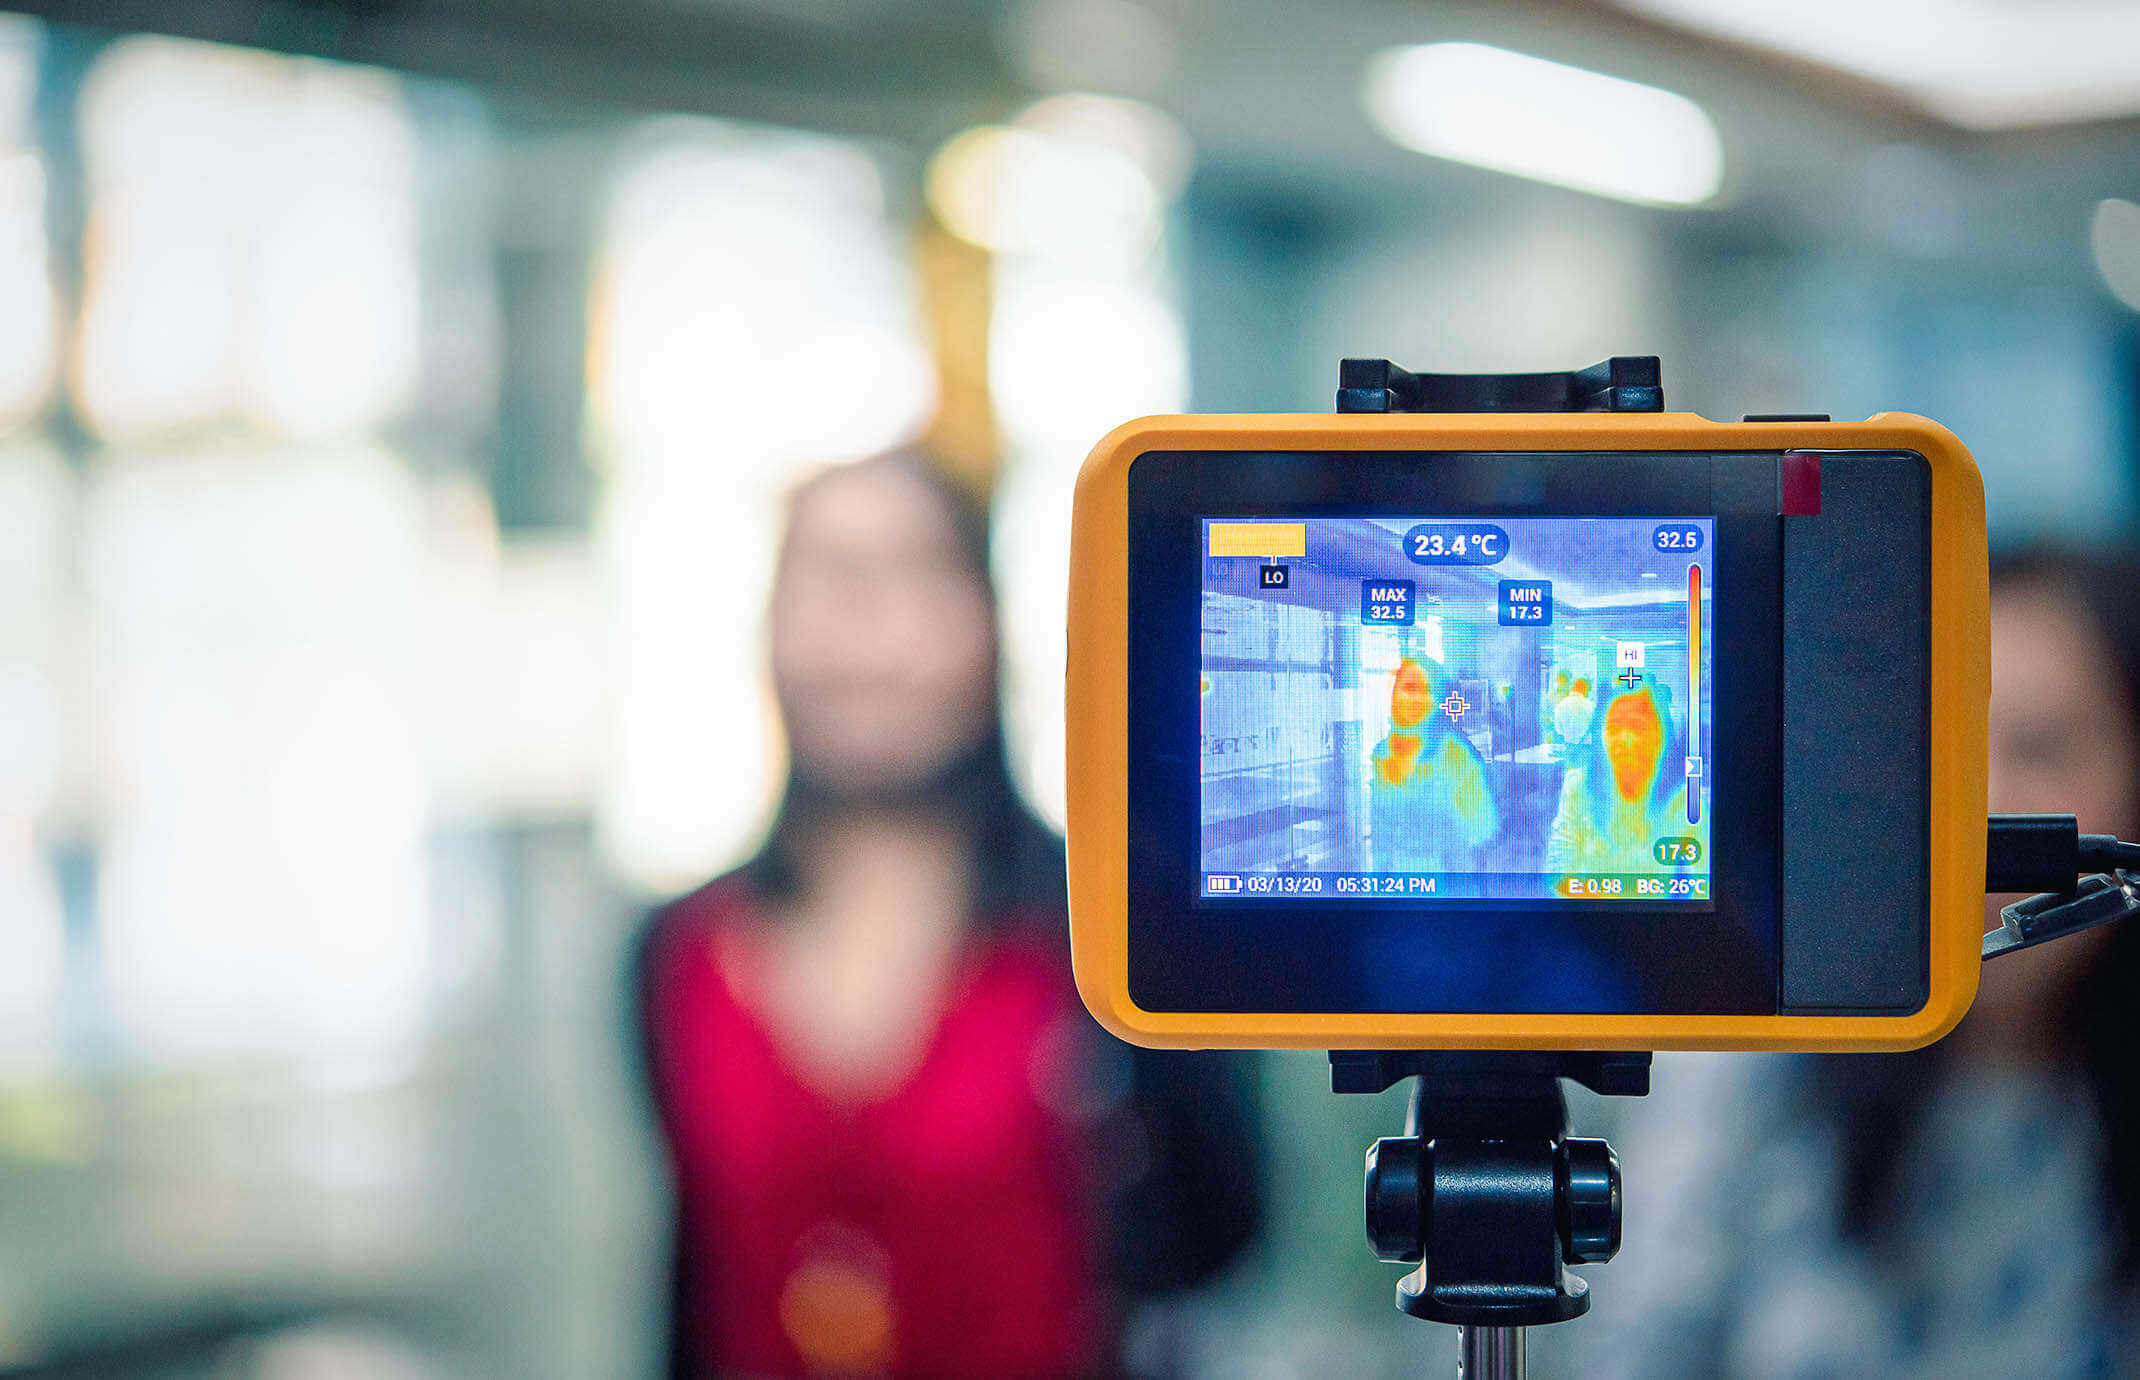 contactless thermographic screening